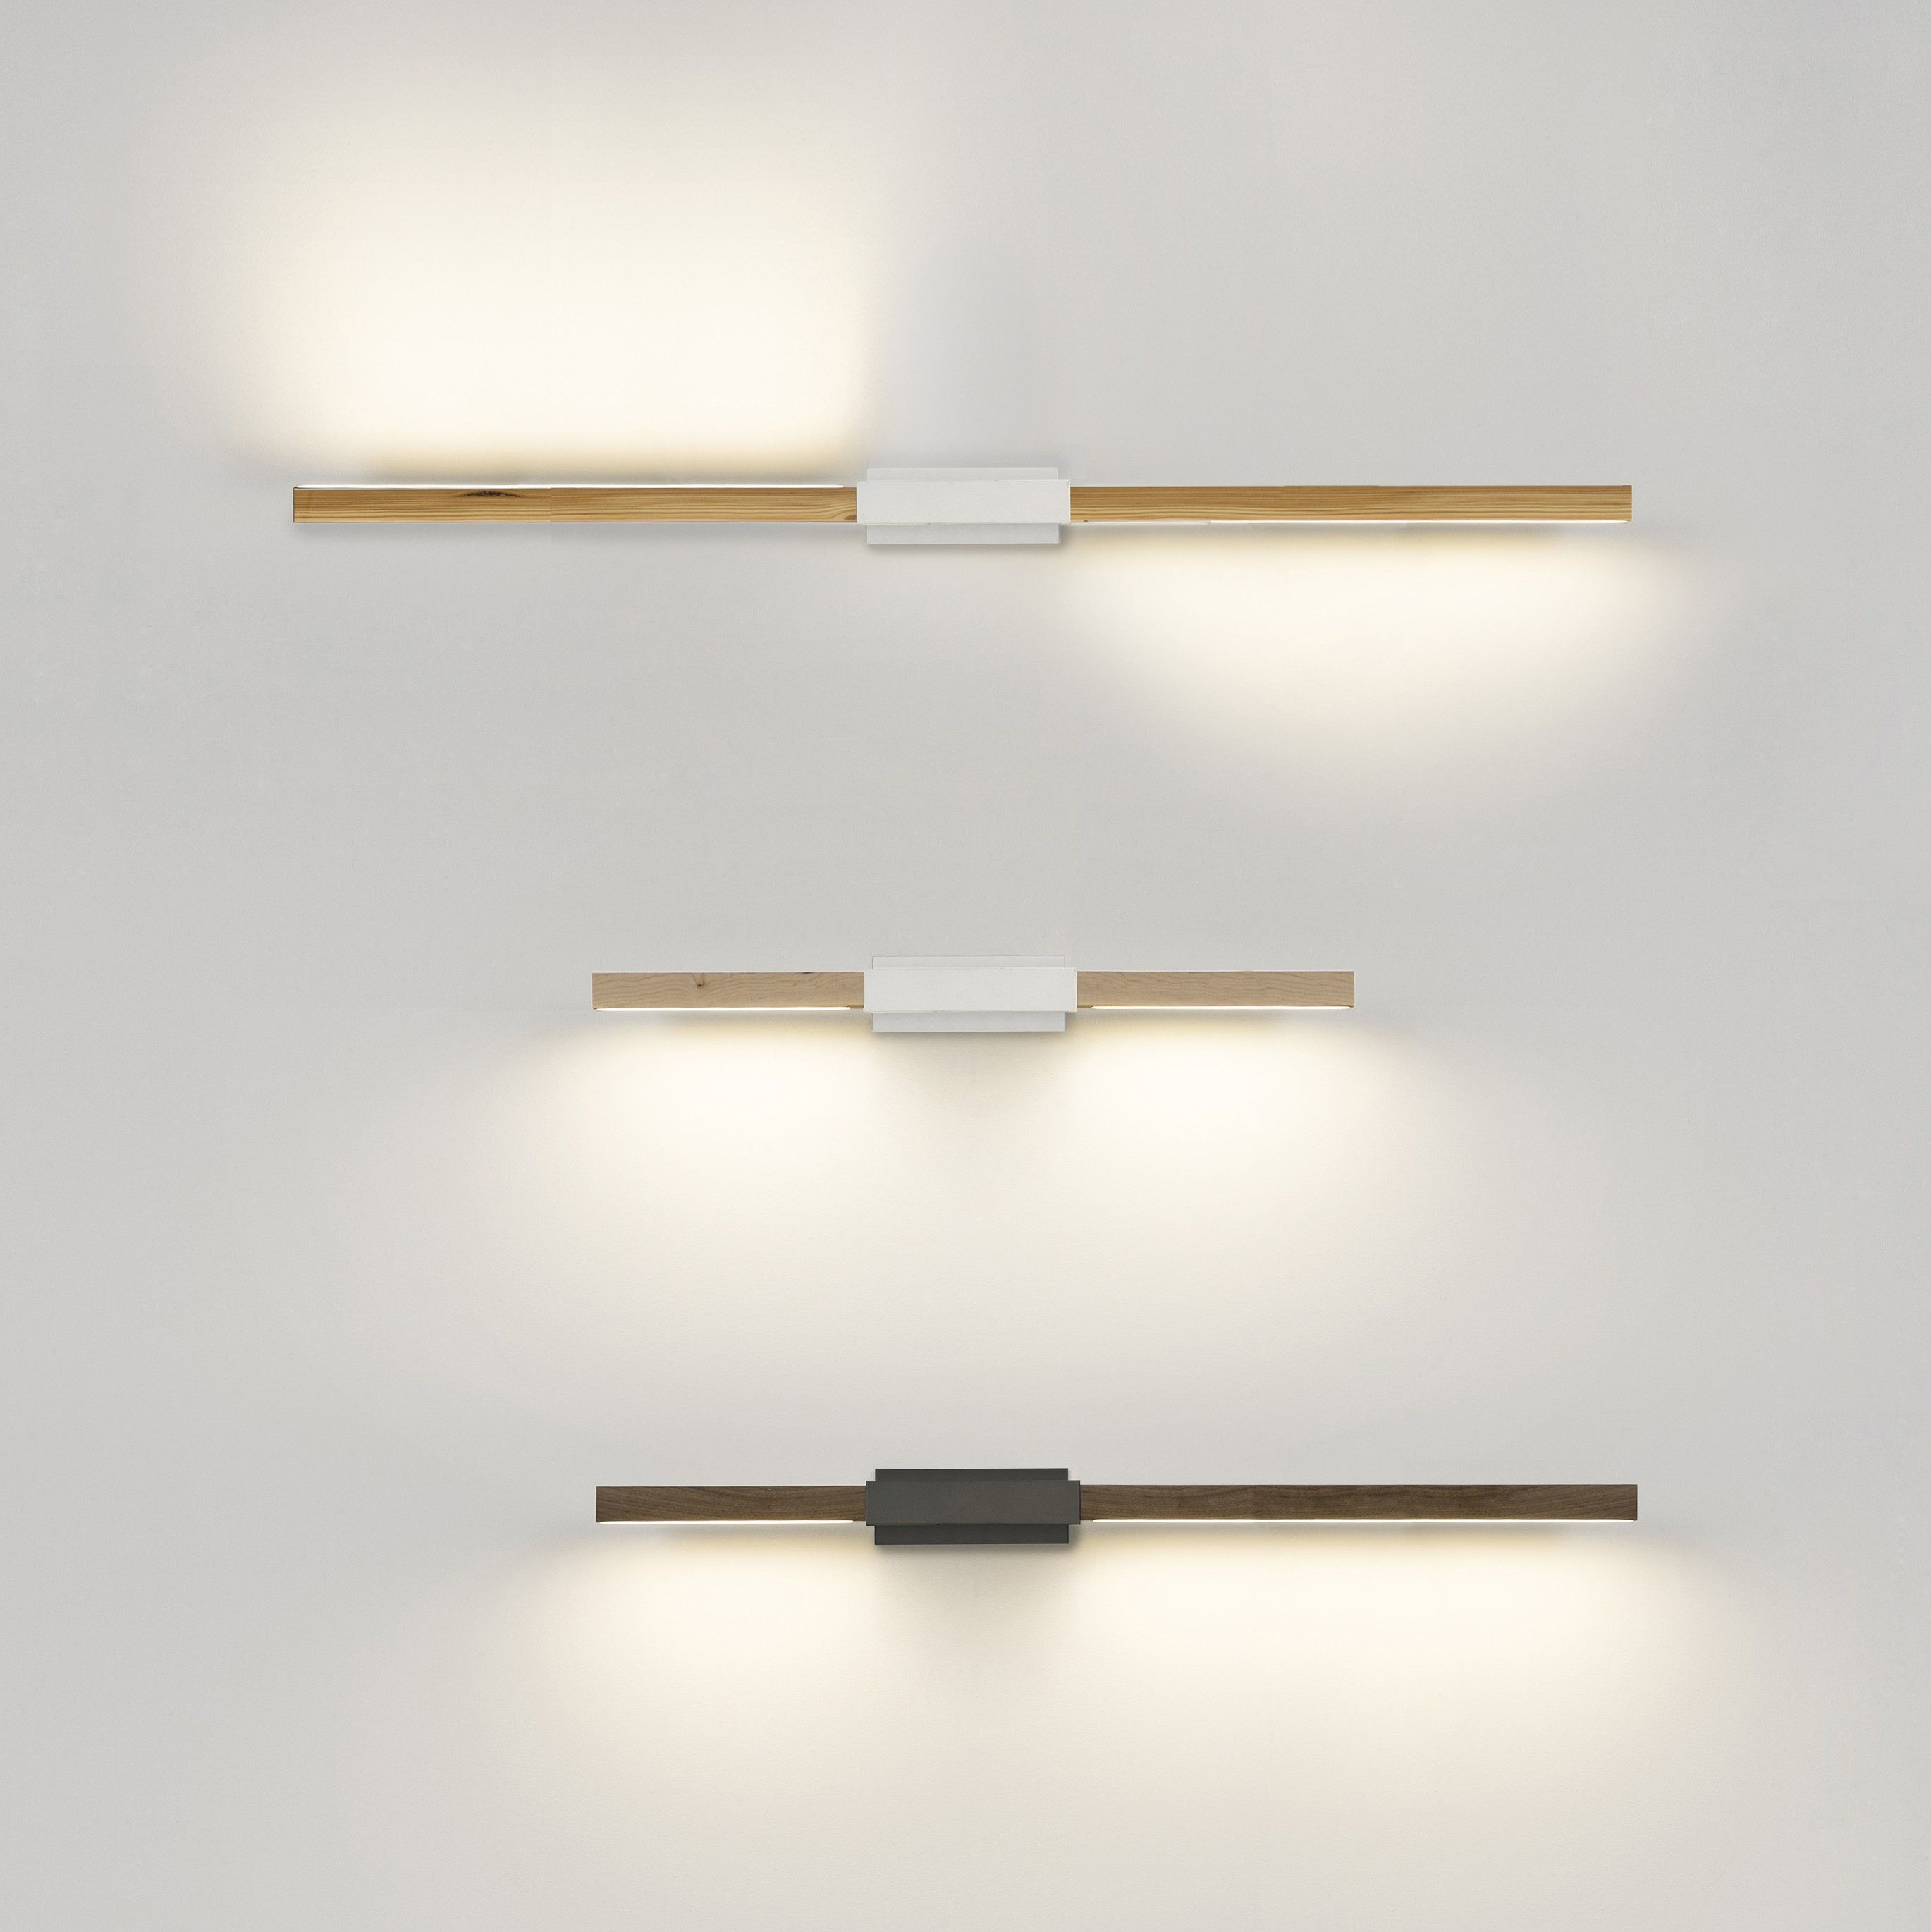 Horizontal Sconce By Stickbulb Bathroom Light Bulbs Sconces Wall Sconce Lighting